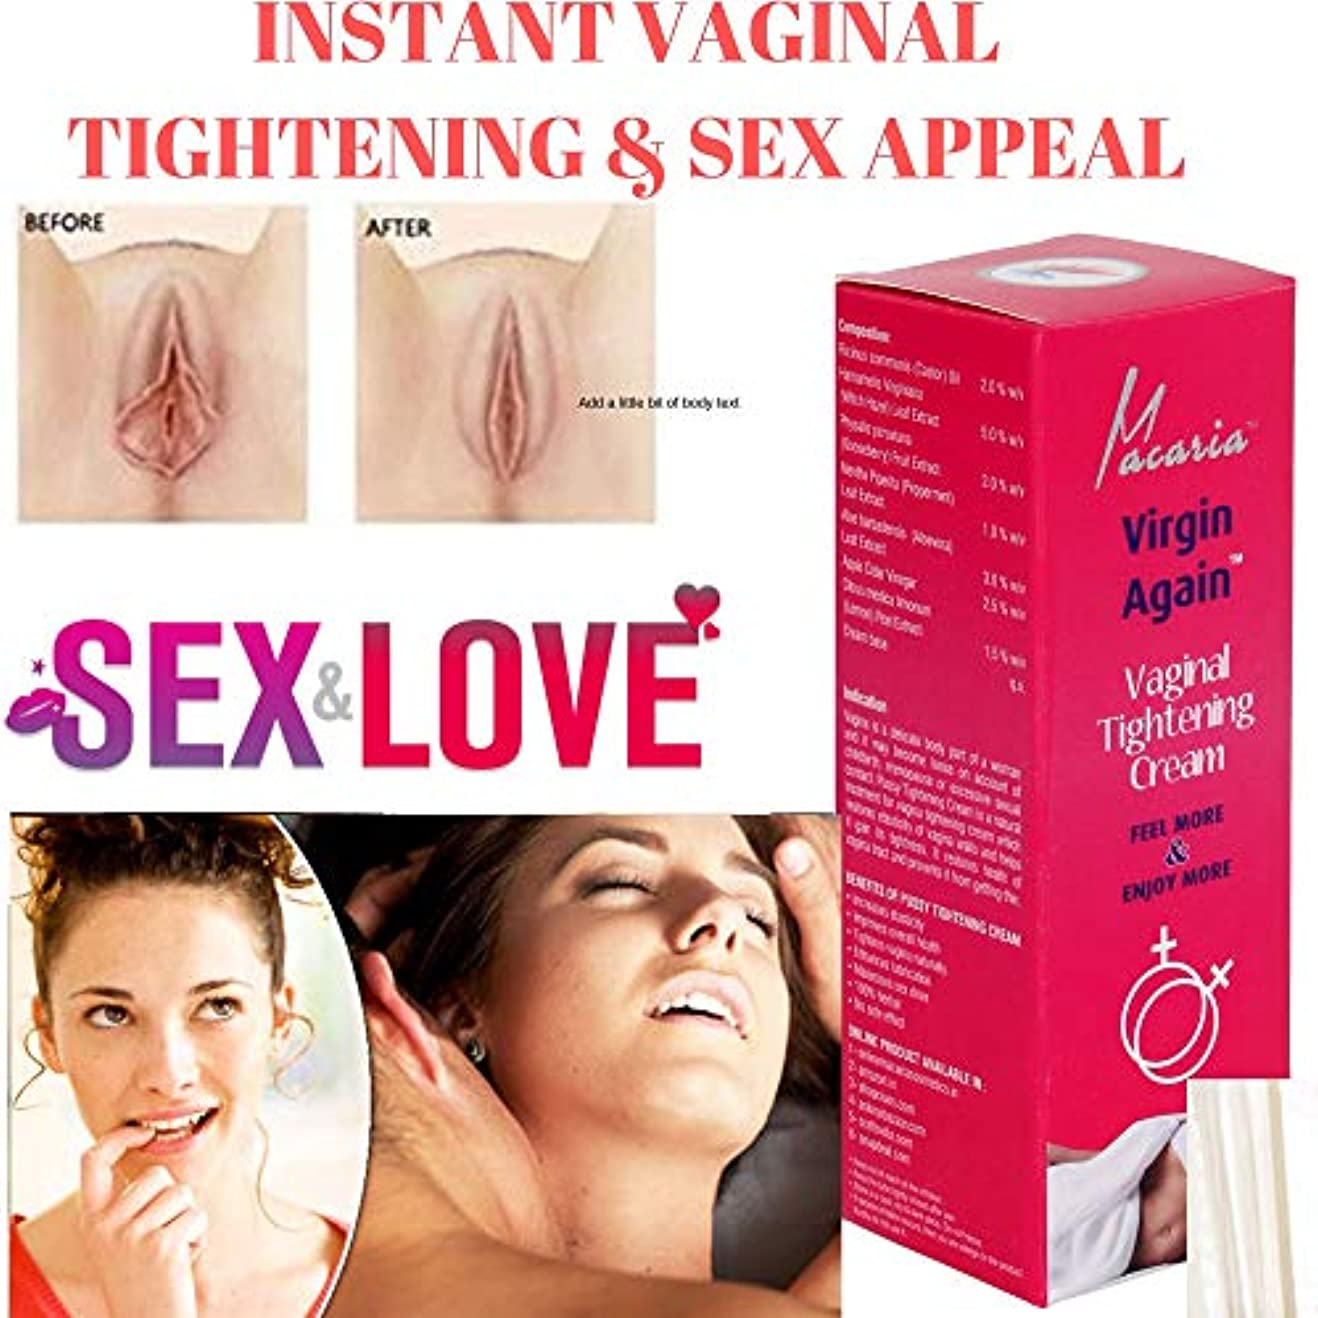 郊外のためプロジェクターVIRGIN AGAIN CREAM ( VAGINAL VAGINA TIGHTENING CREAM GEL LOTION VIRGIN AGAIN CREAM ( VAGINAL VAGINA TIGHTENING...